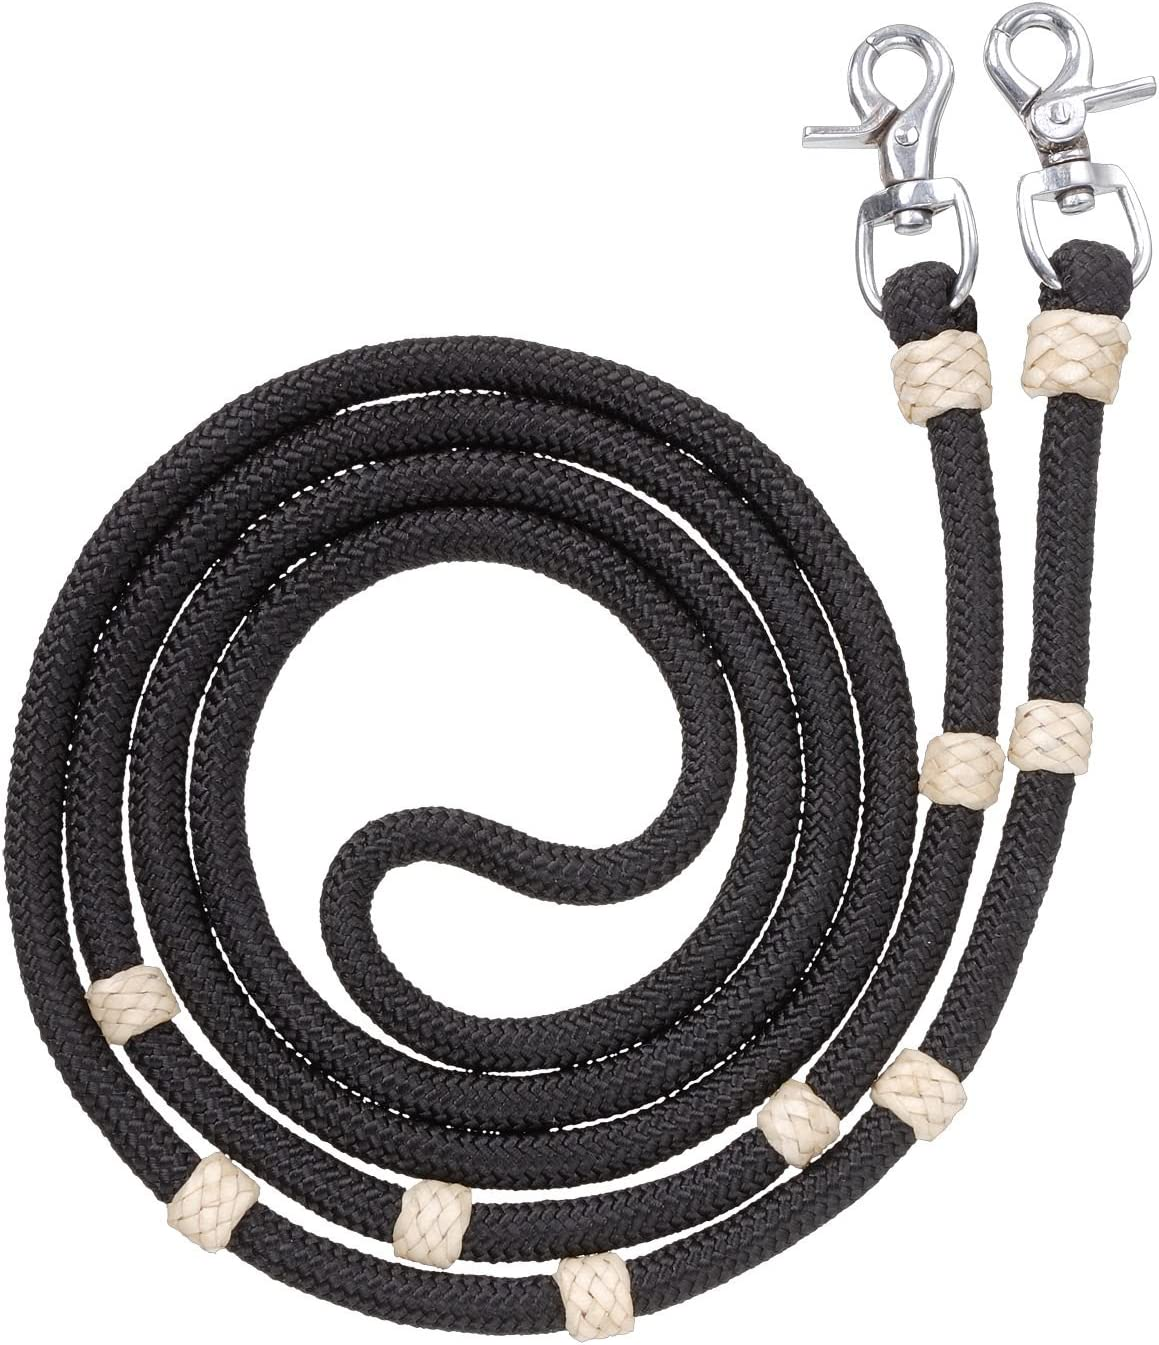 Tough 1 Ranking Ranking integrated 1st place integrated 1st place Royal King Braided Contest Reins Roping